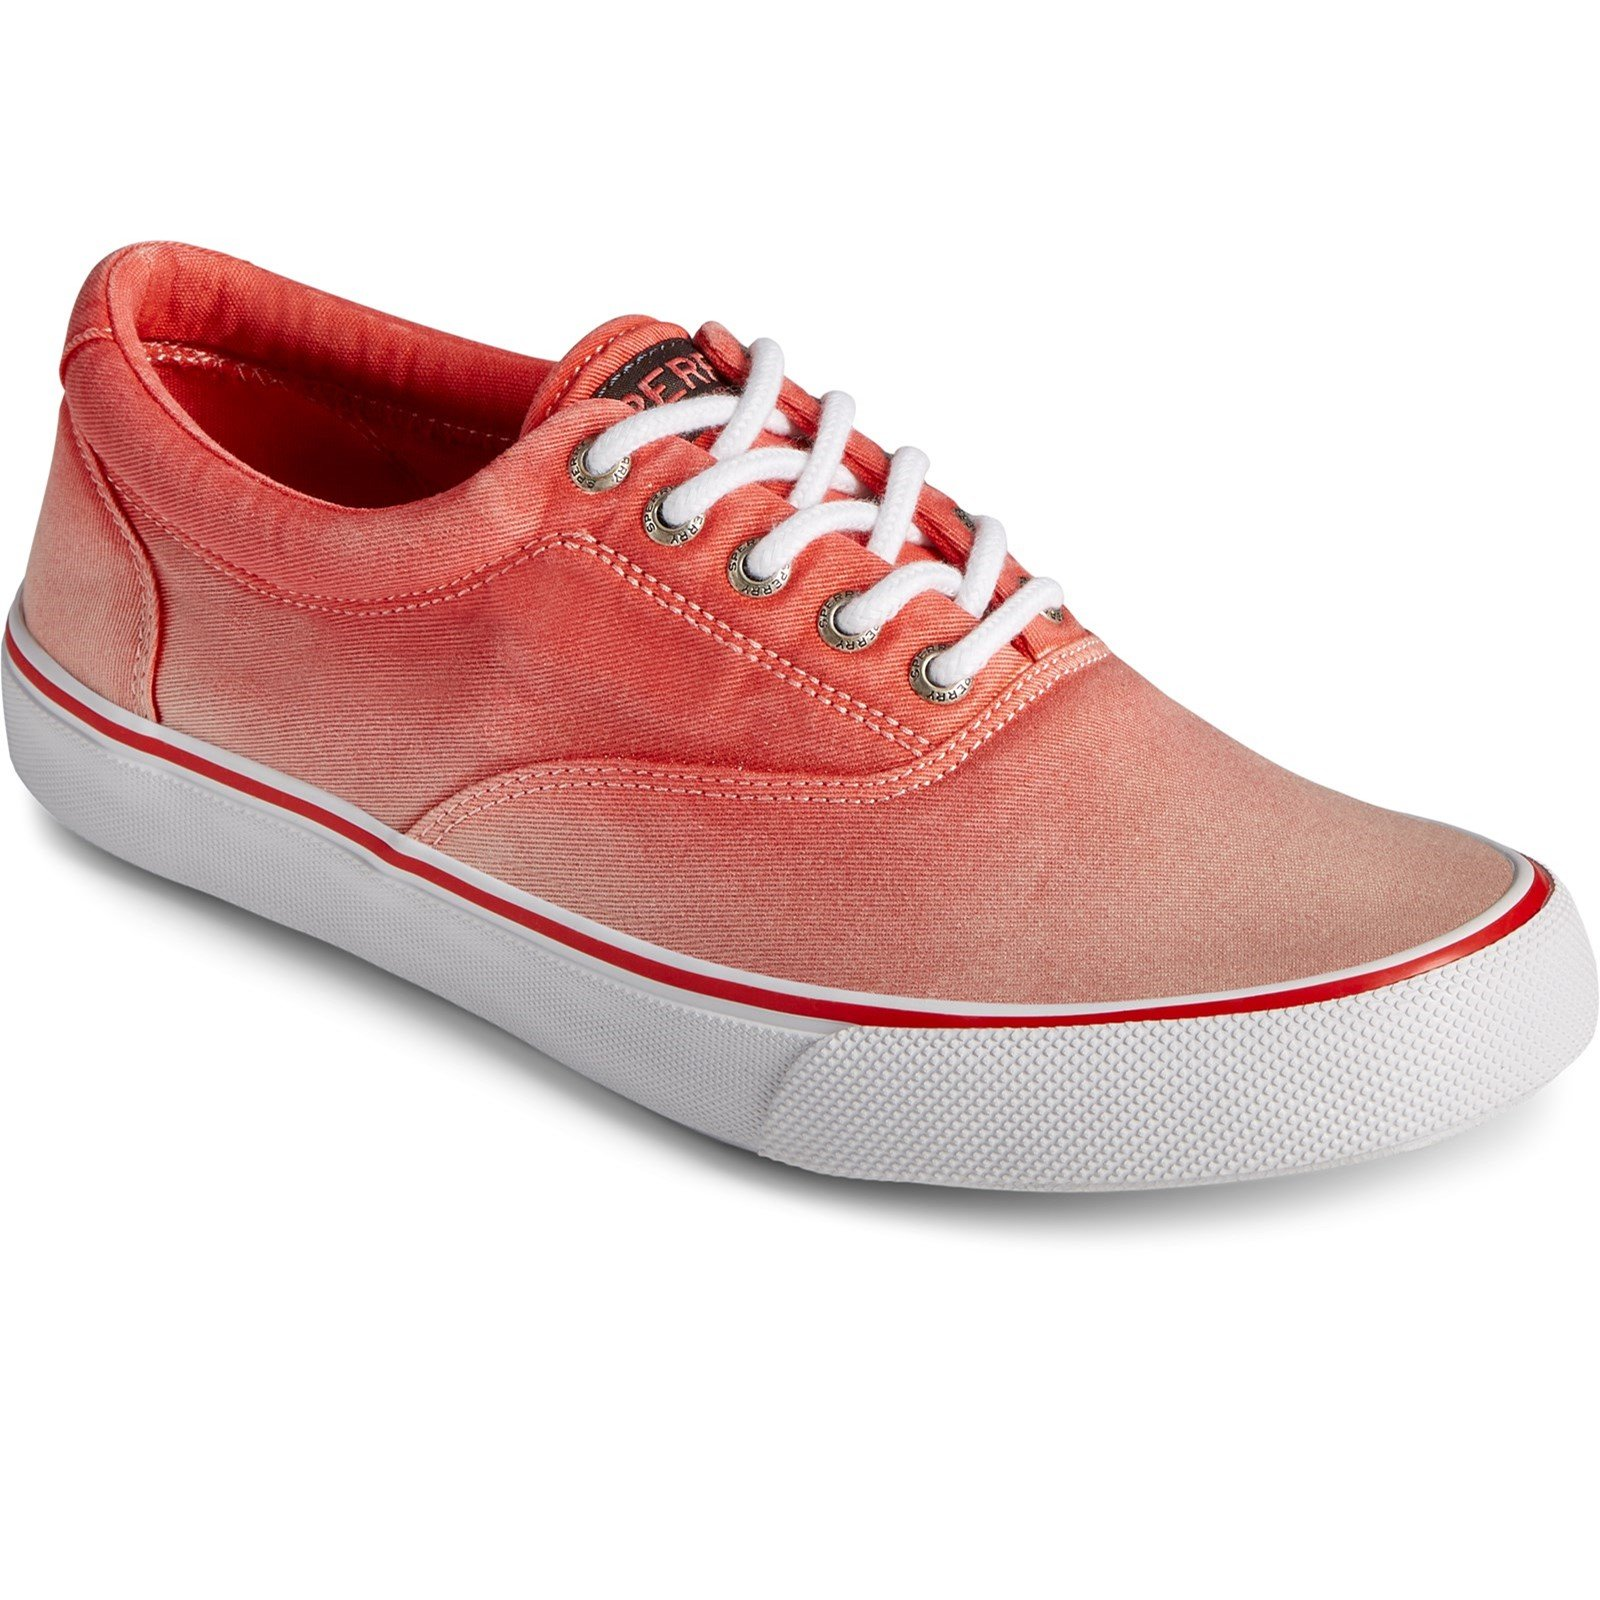 Sperry Men's Striper II CVO Ombre Lace Trainer Various Colours 32932 - Red 12